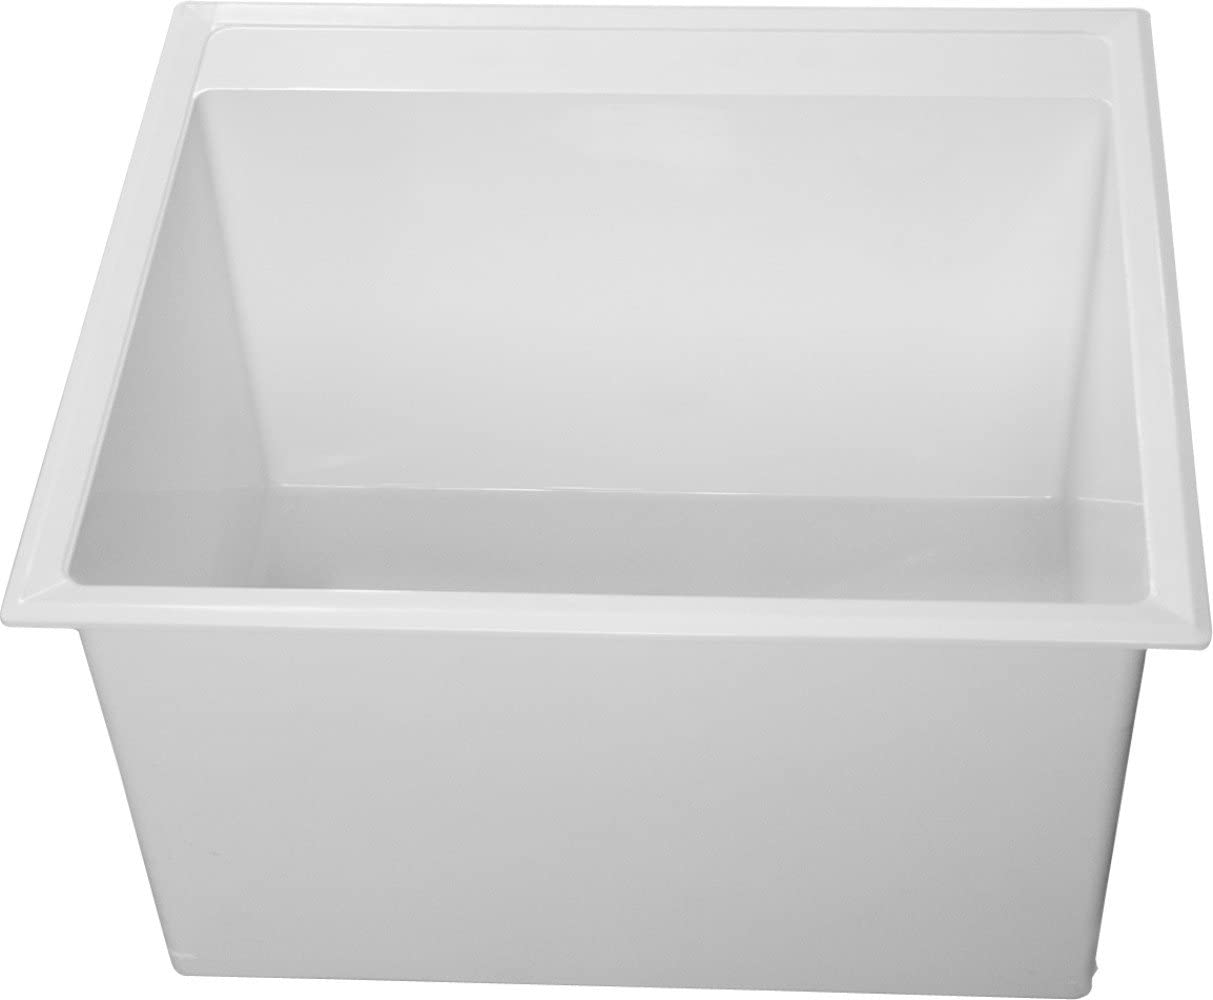 Laundry Tub, Wall, White, 20 In L, 24 In W